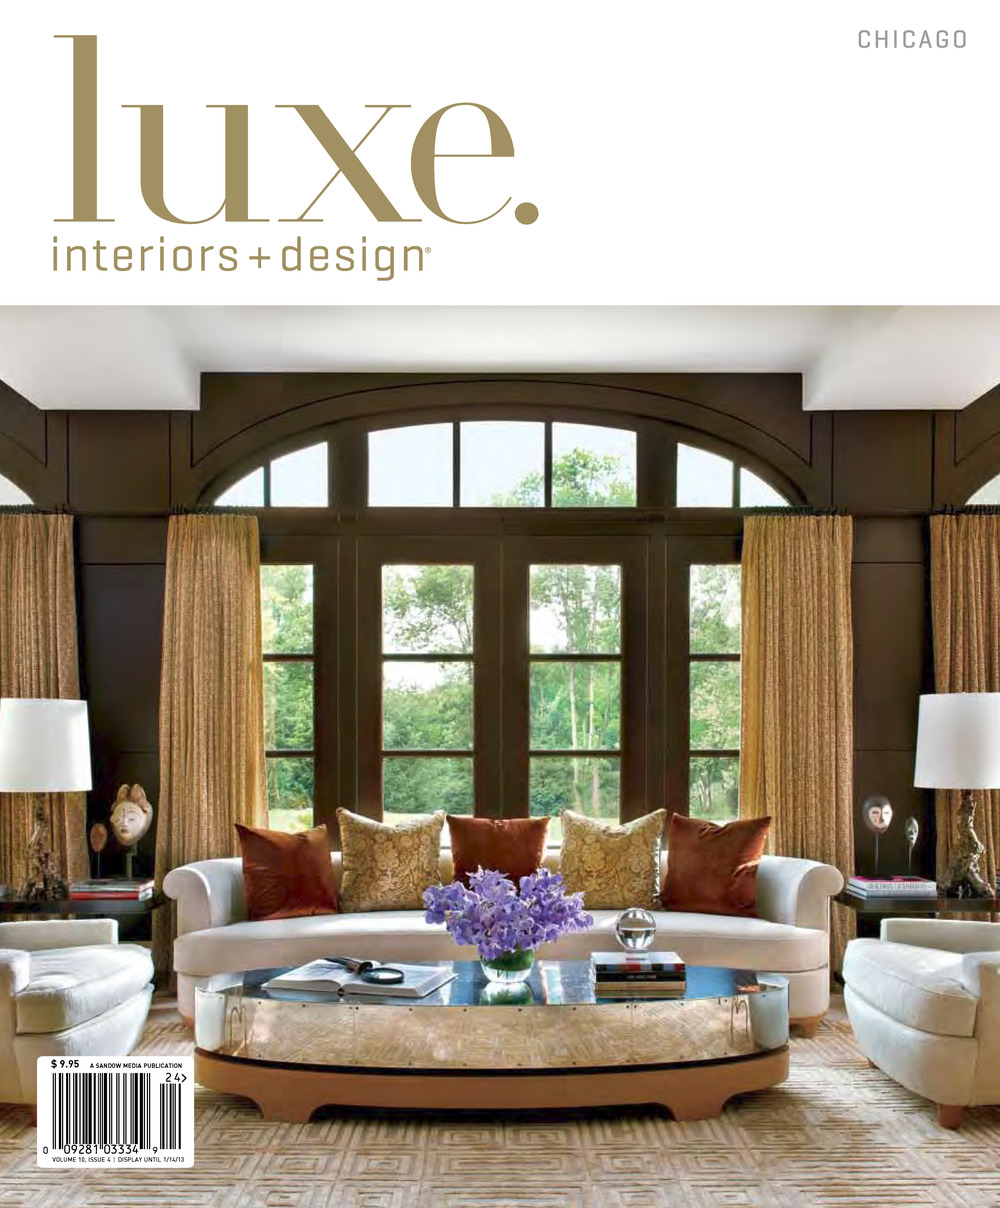 luxe chicago fall 2012 city pied a terre_page_1jpg - Luxe Interiors And Design Magazine